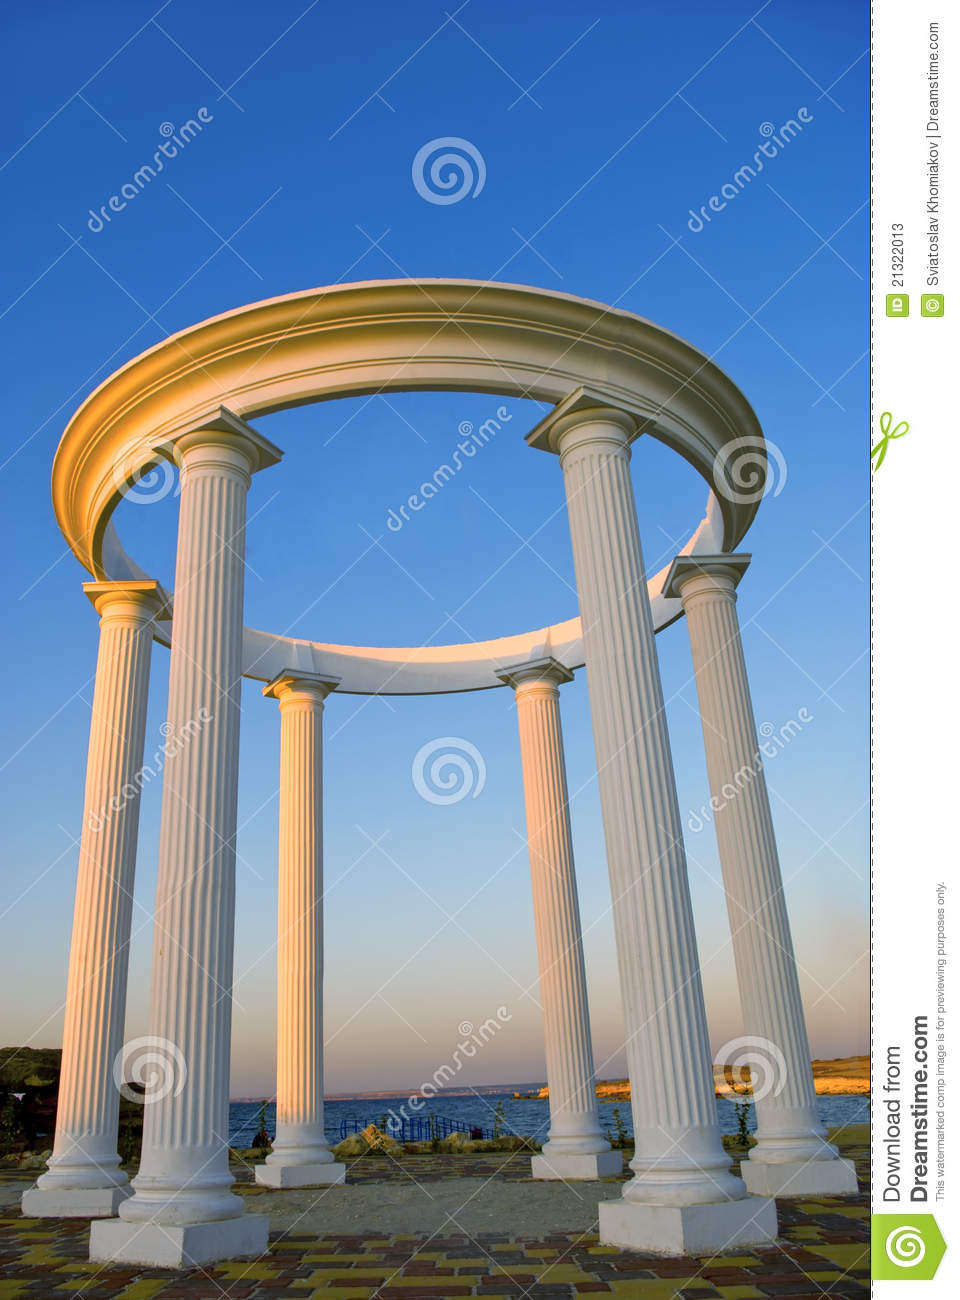 Arch With Columns Stock Photos Image 21322013